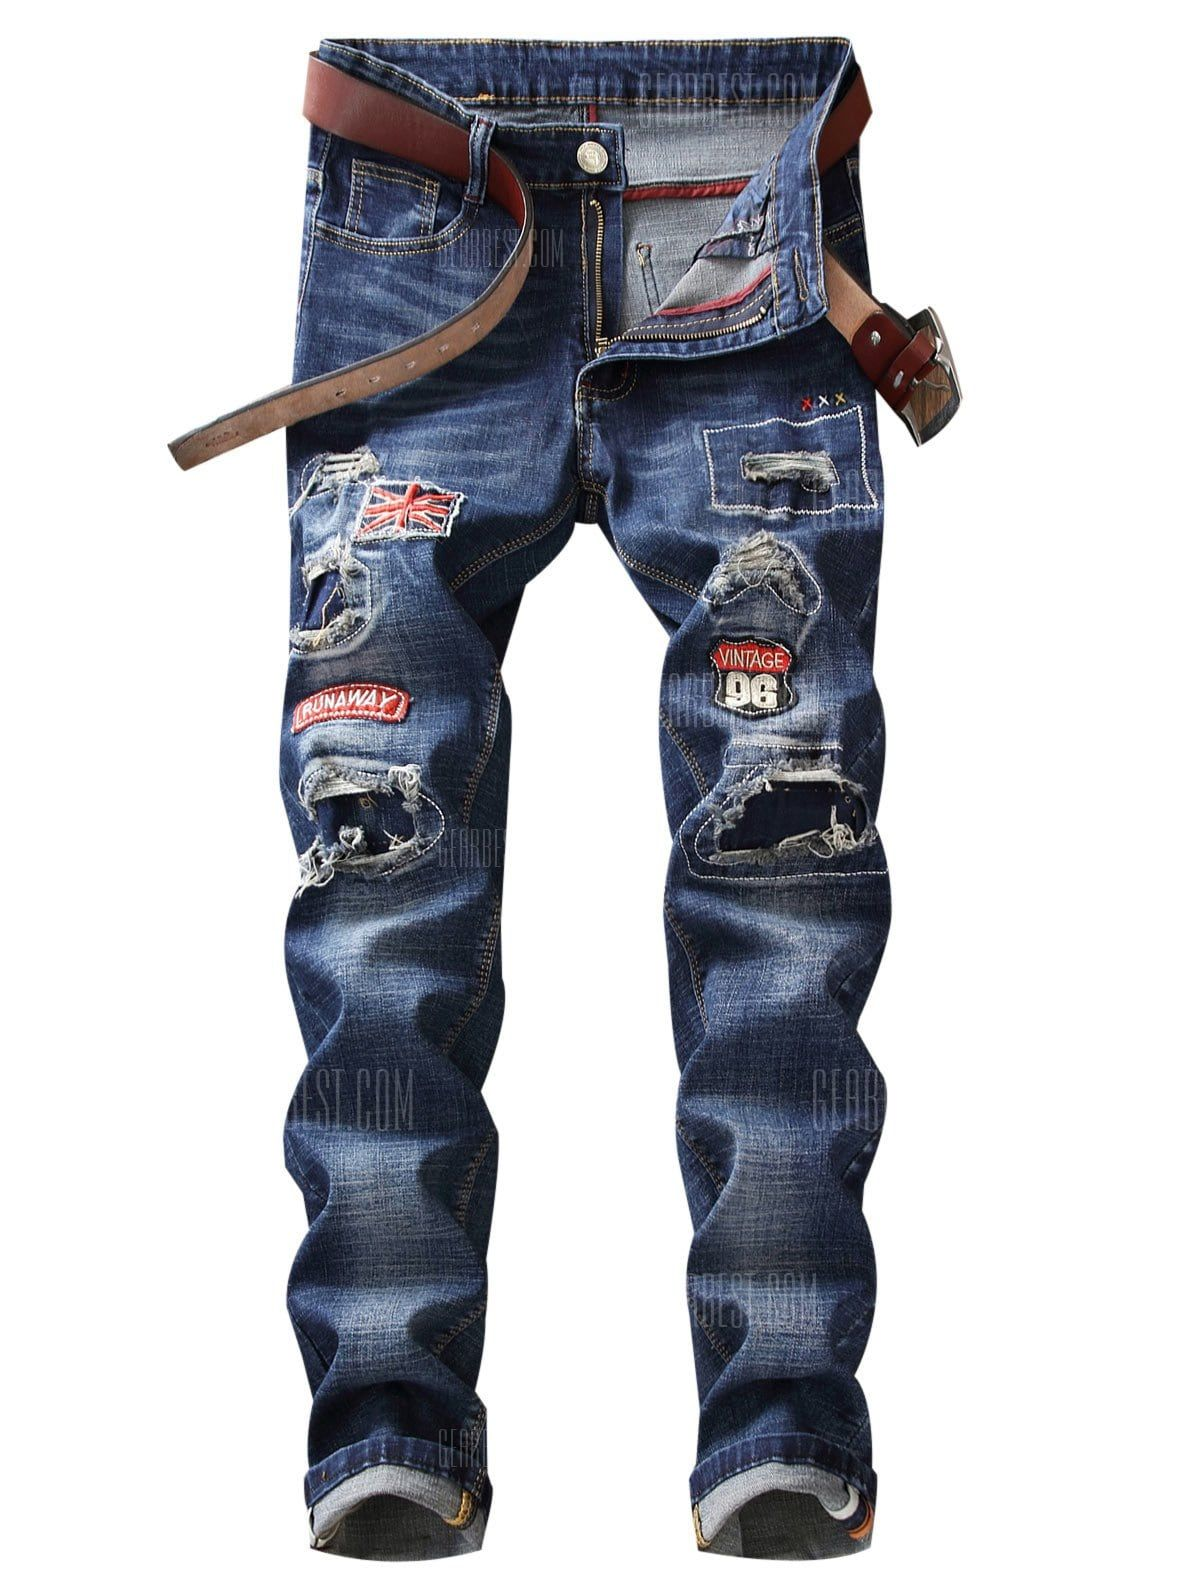 c5584a2f27f6 Patch Jeans, Patches, Legs, Fashion, Moda, Fashion Styles, Patchwork Jeans